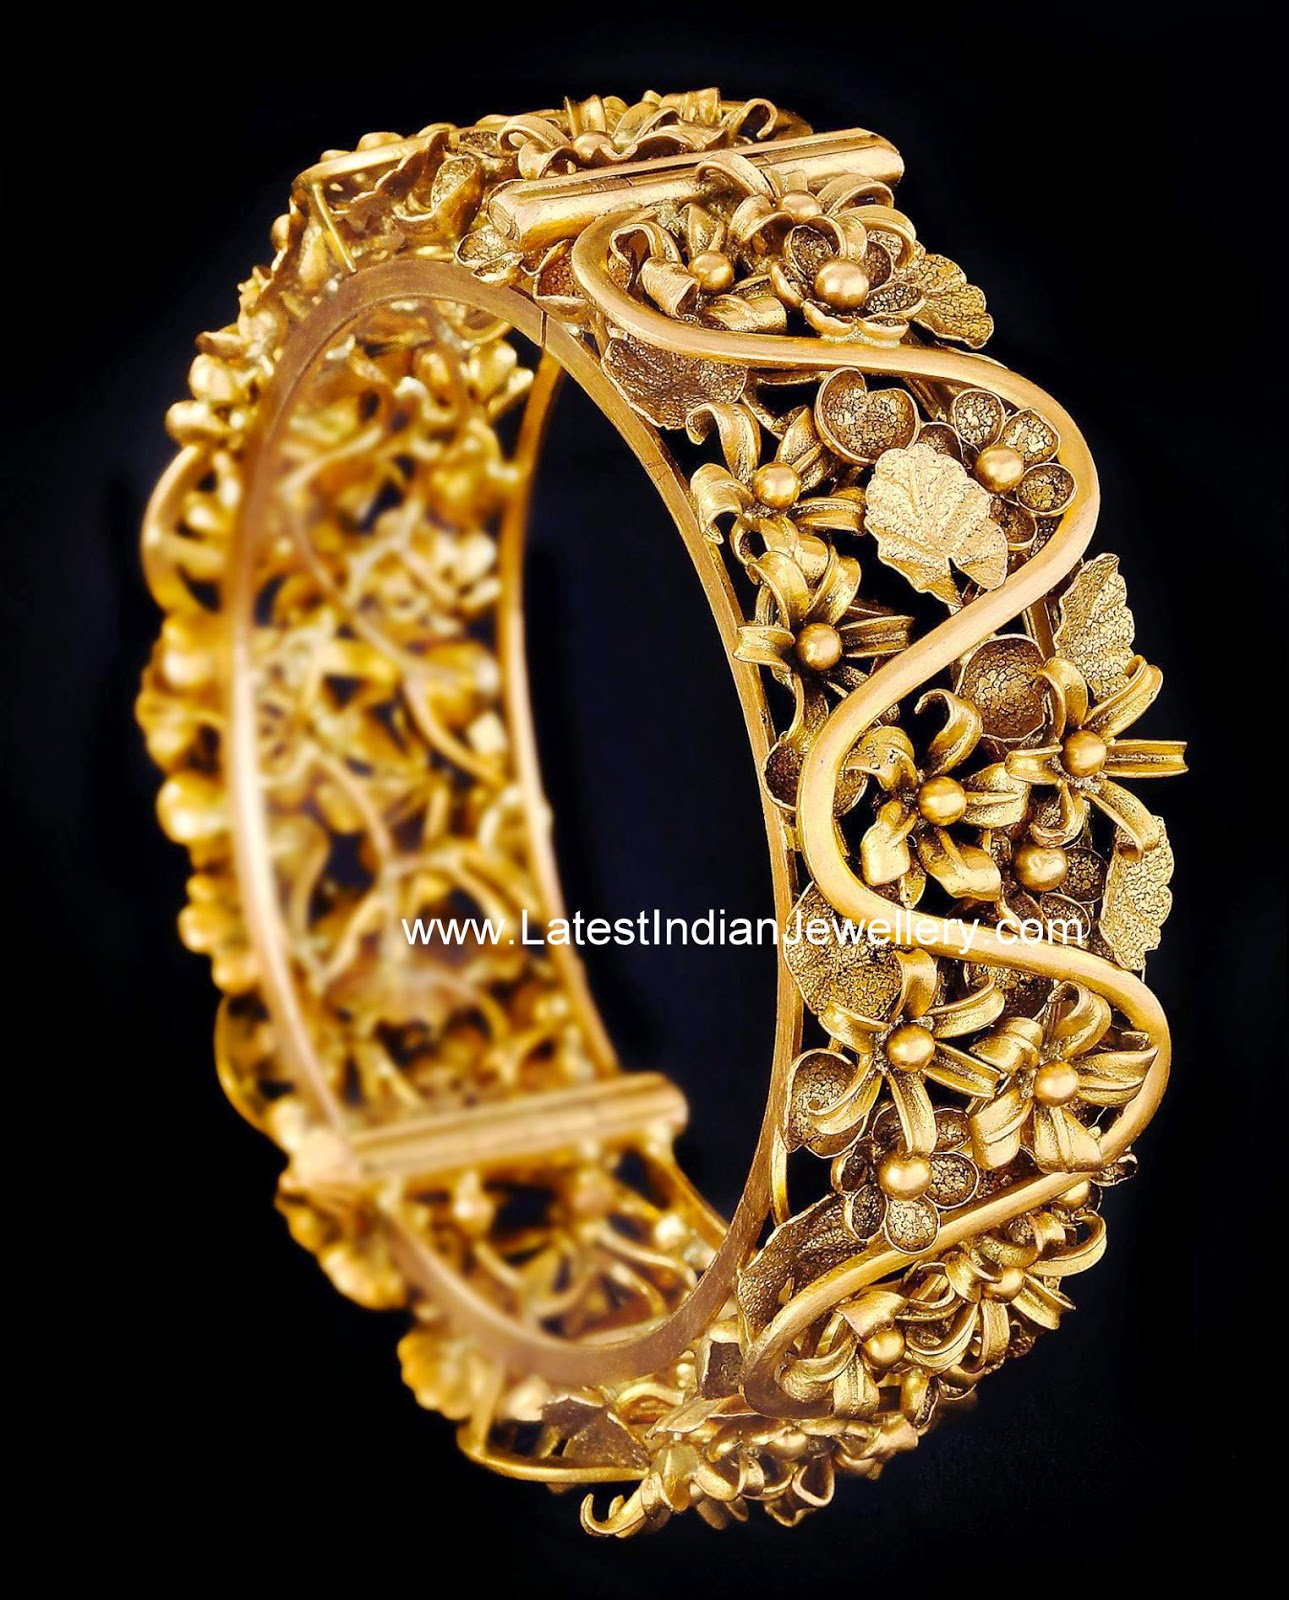 Senco gold bangle collection with price